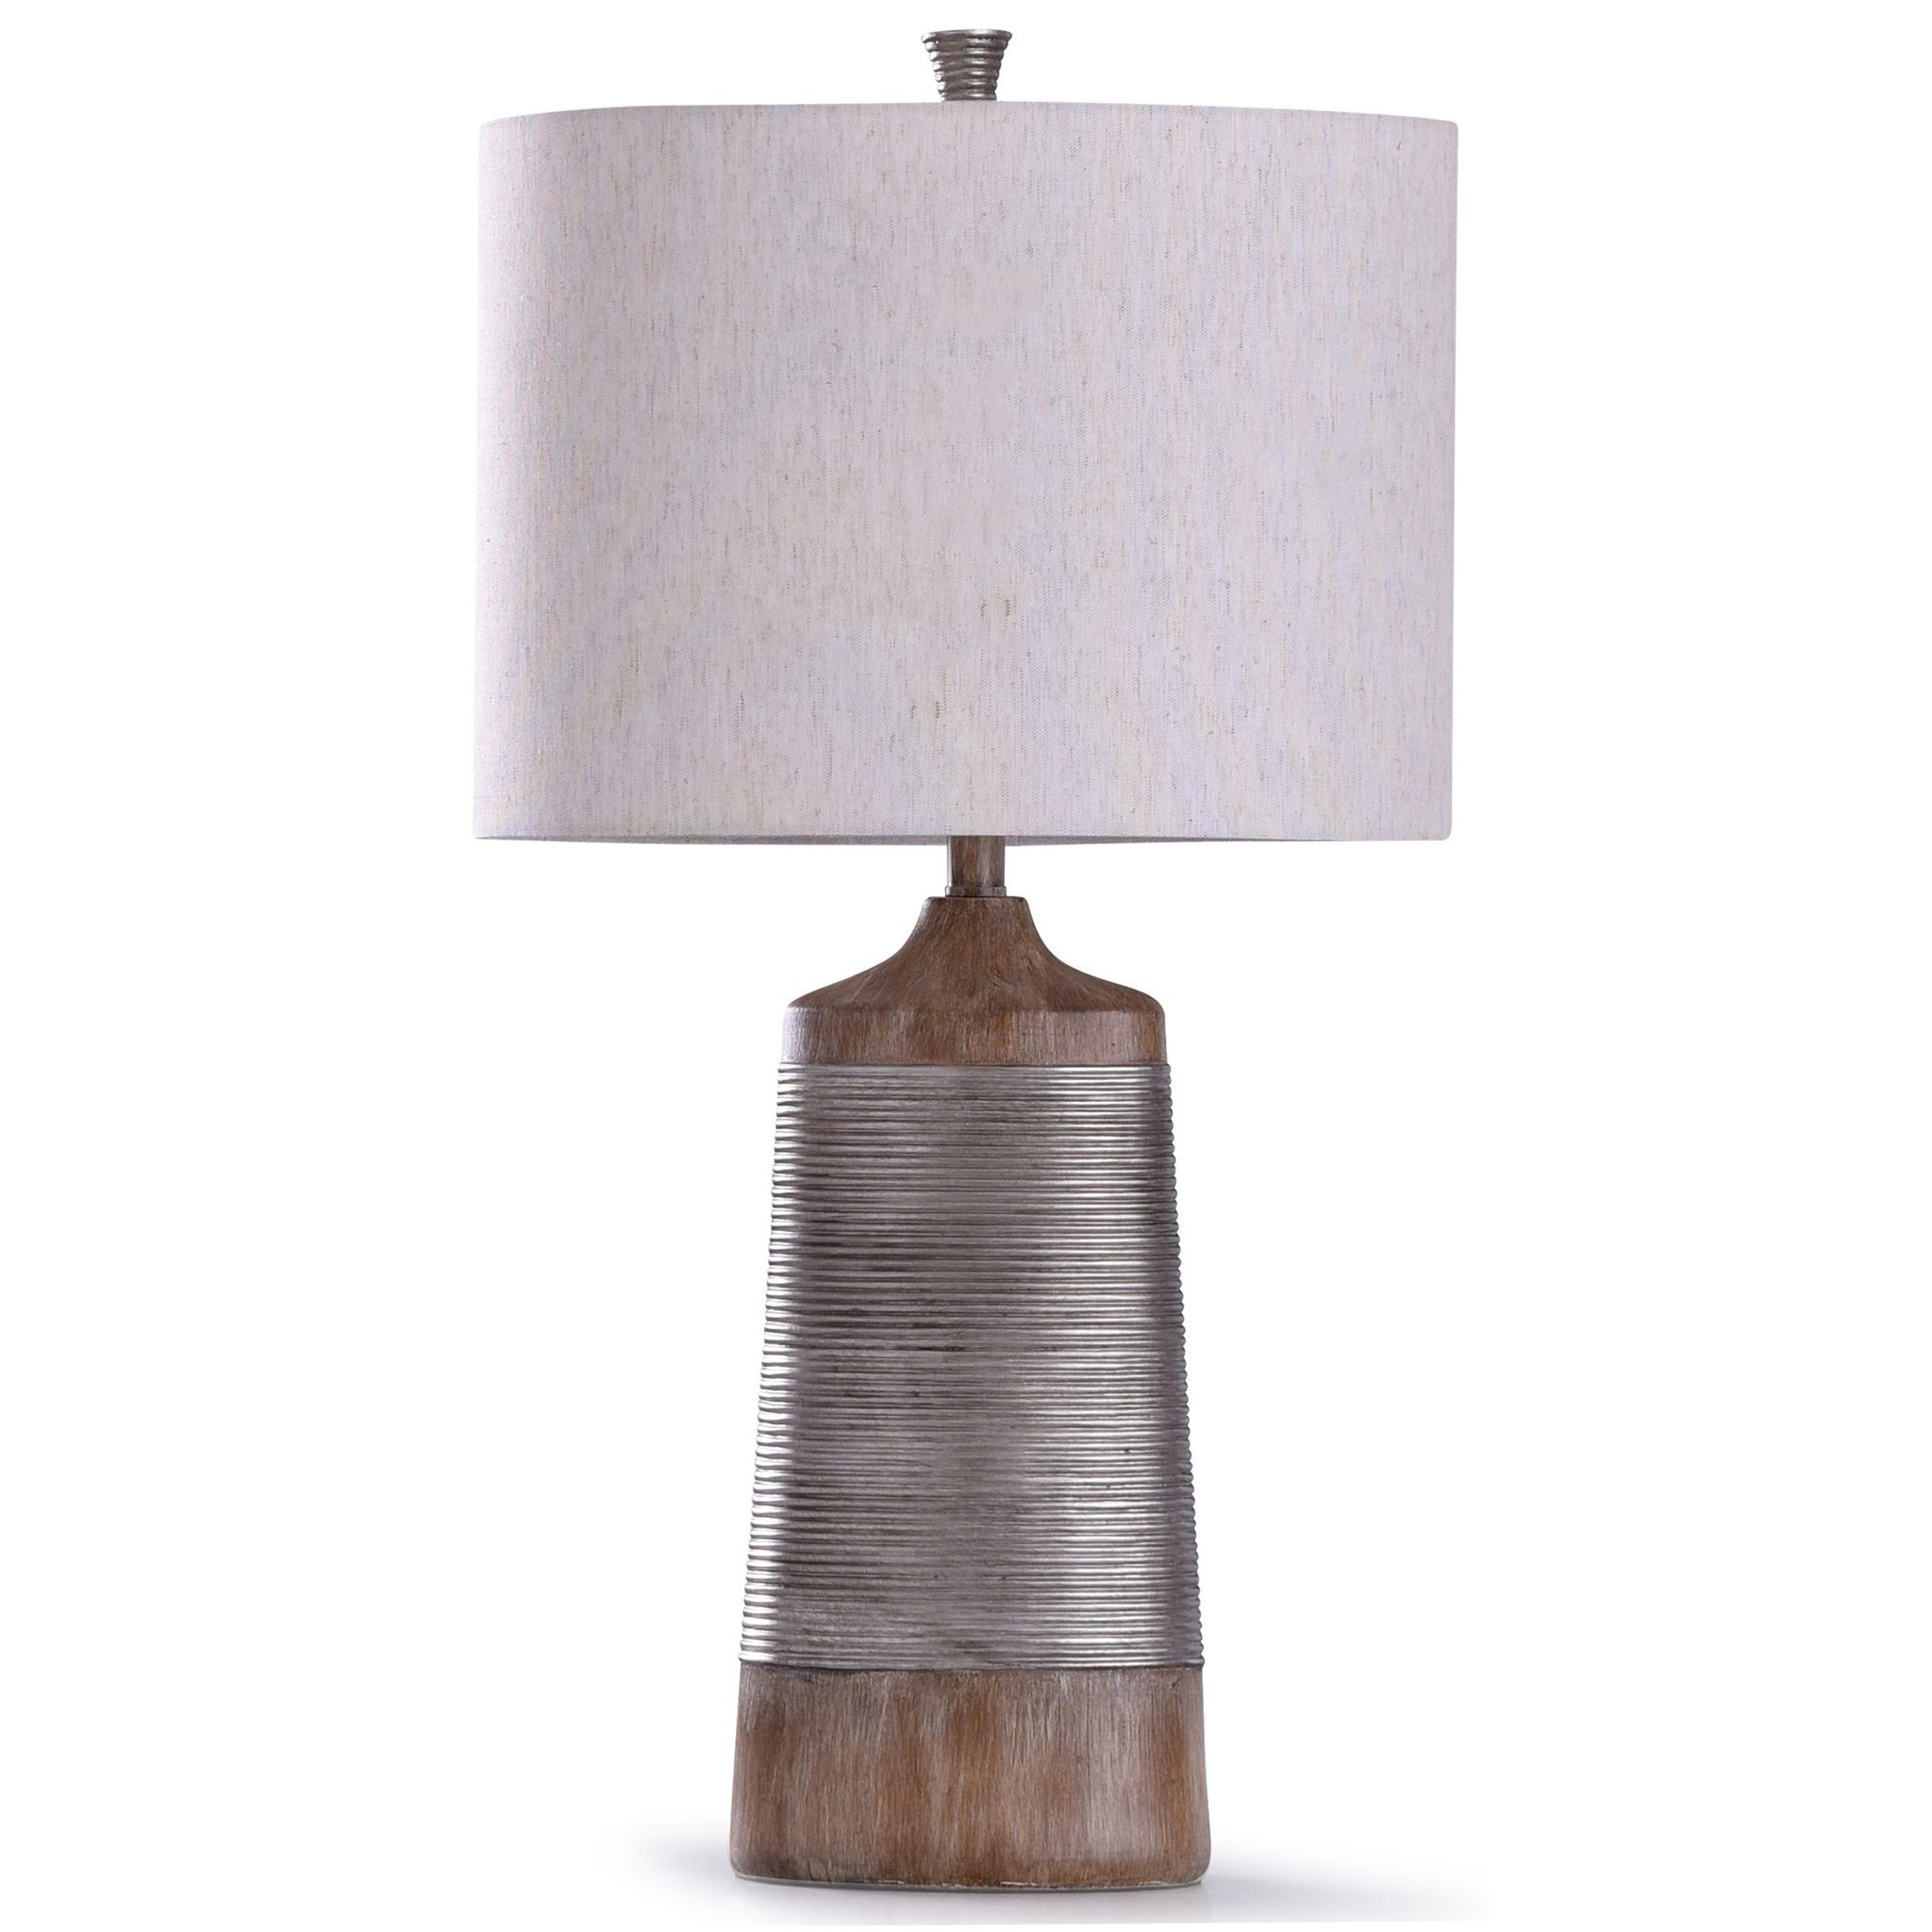 Lamps Haverhill 31 Inch Table Lamp by StyleCraft at Becker Furniture